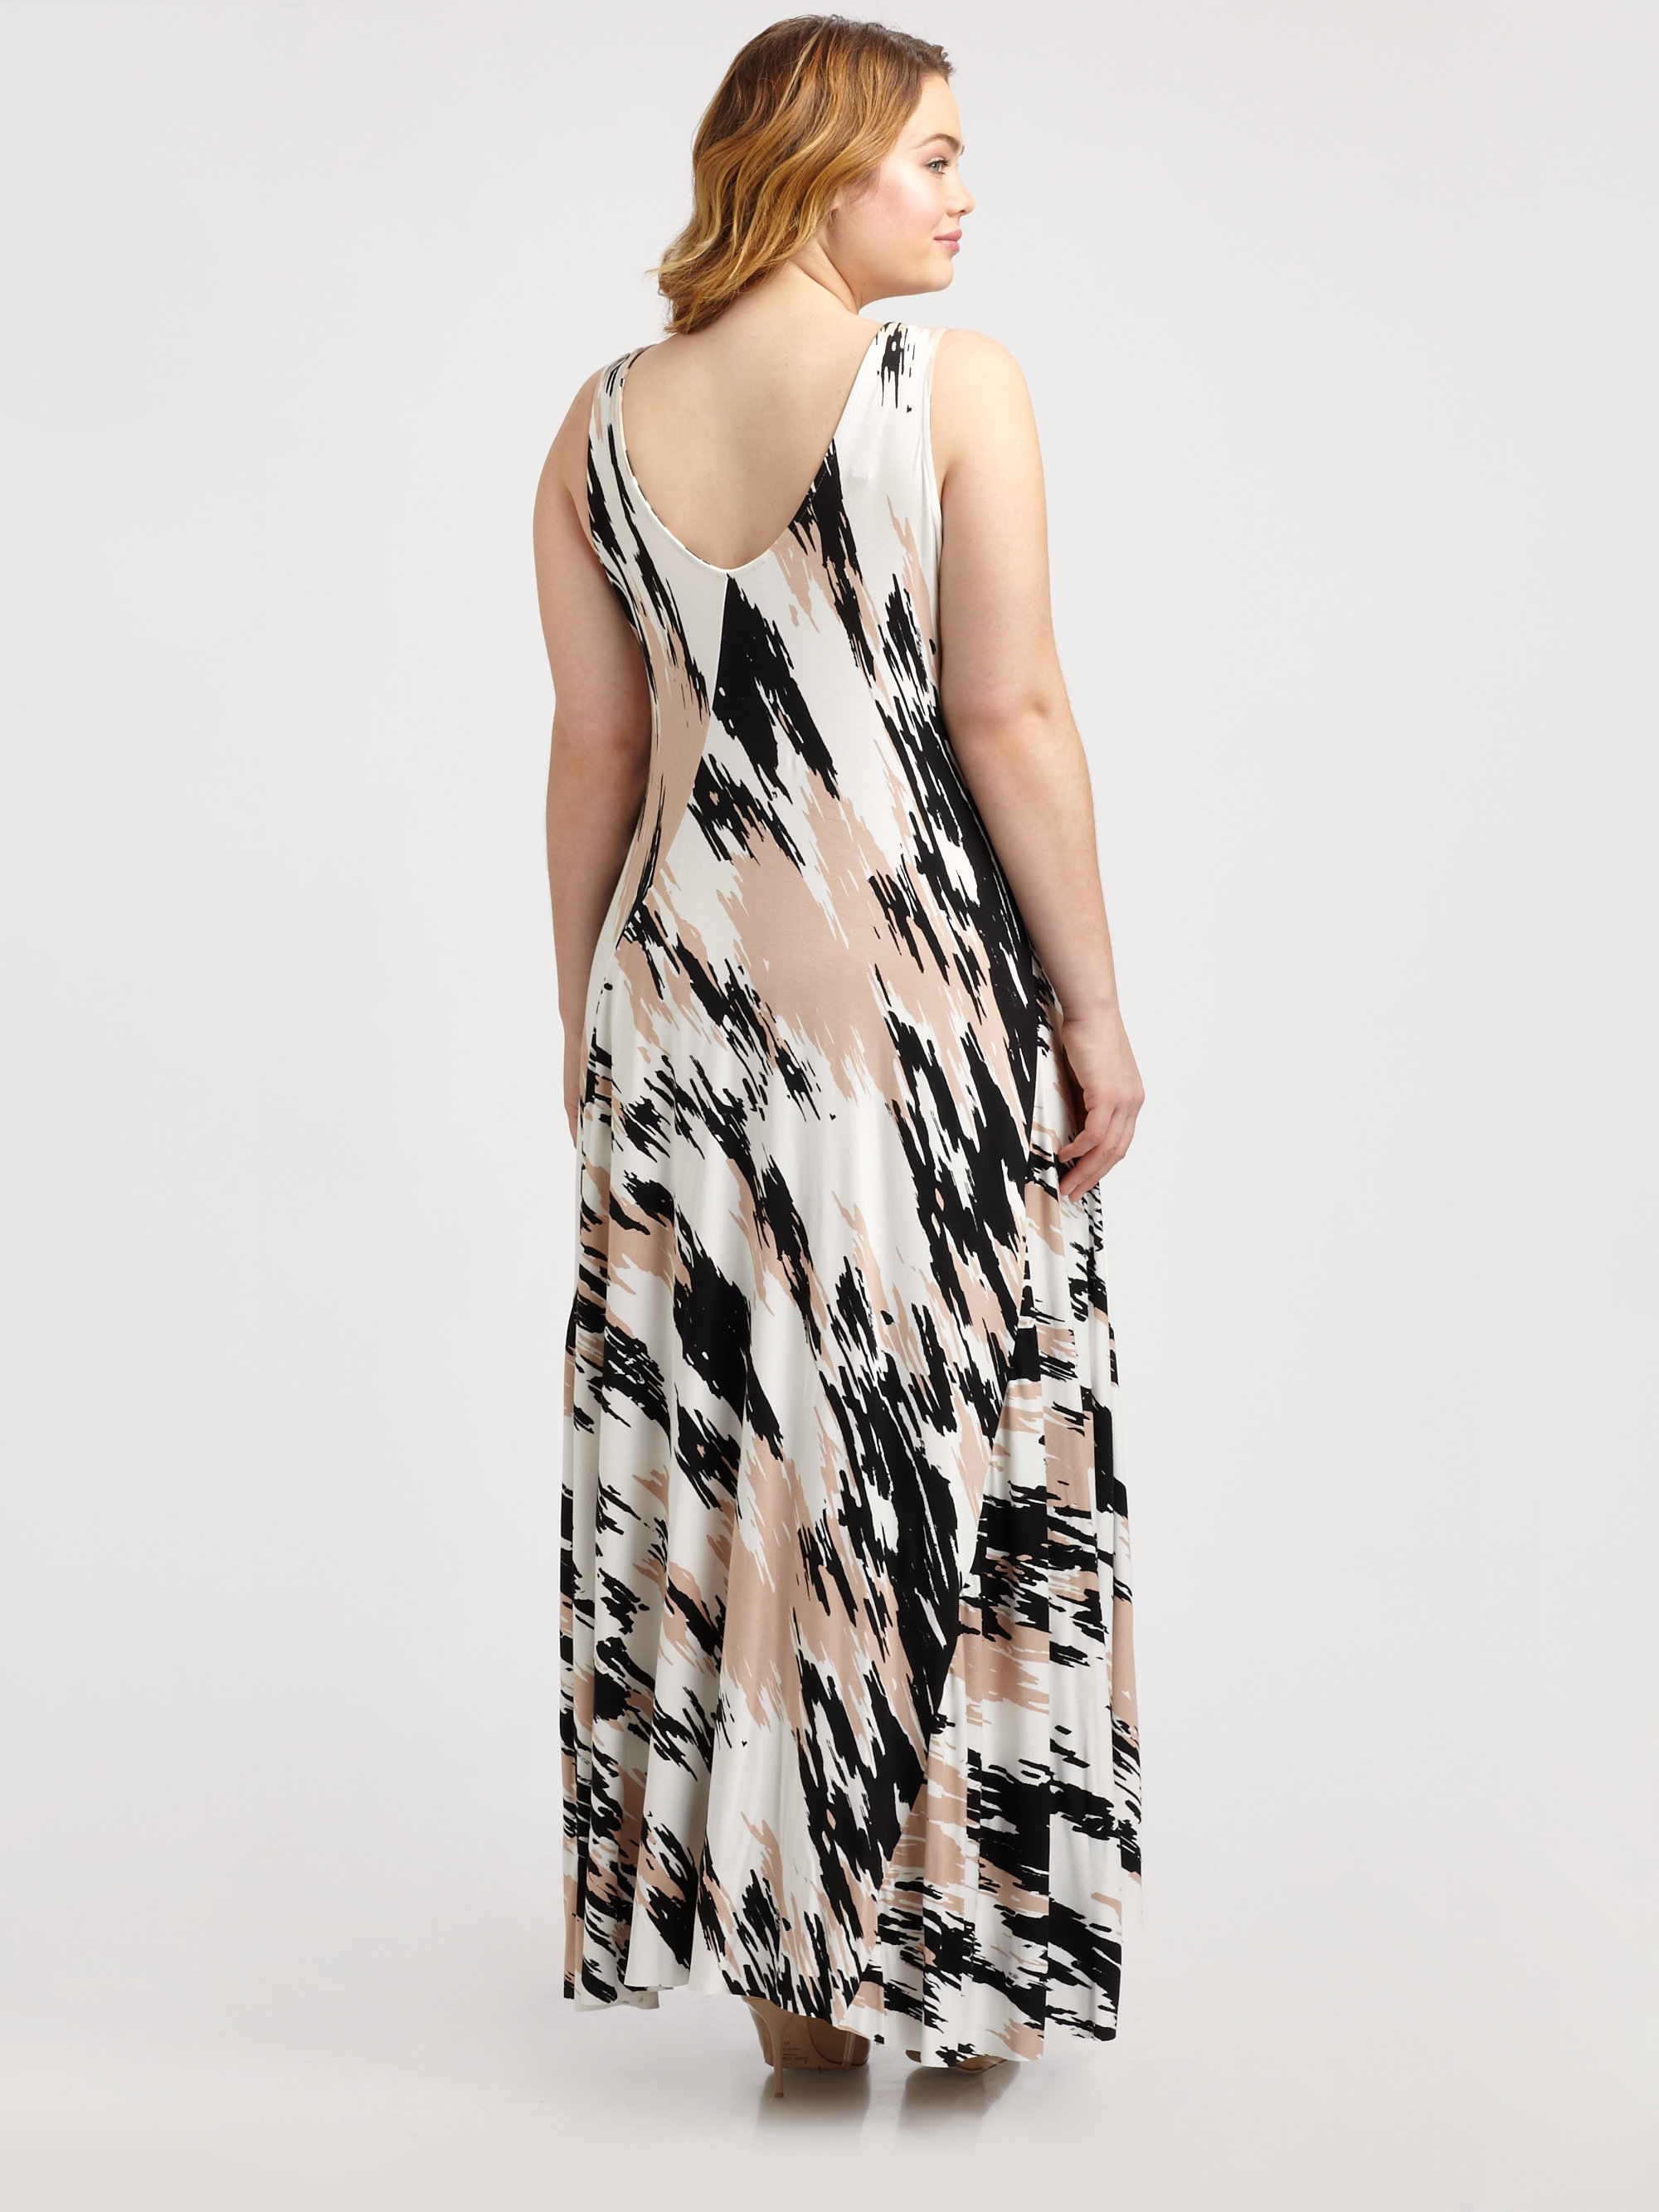 Rachel pally nora dress in natural lyst gallery ombrellifo Images